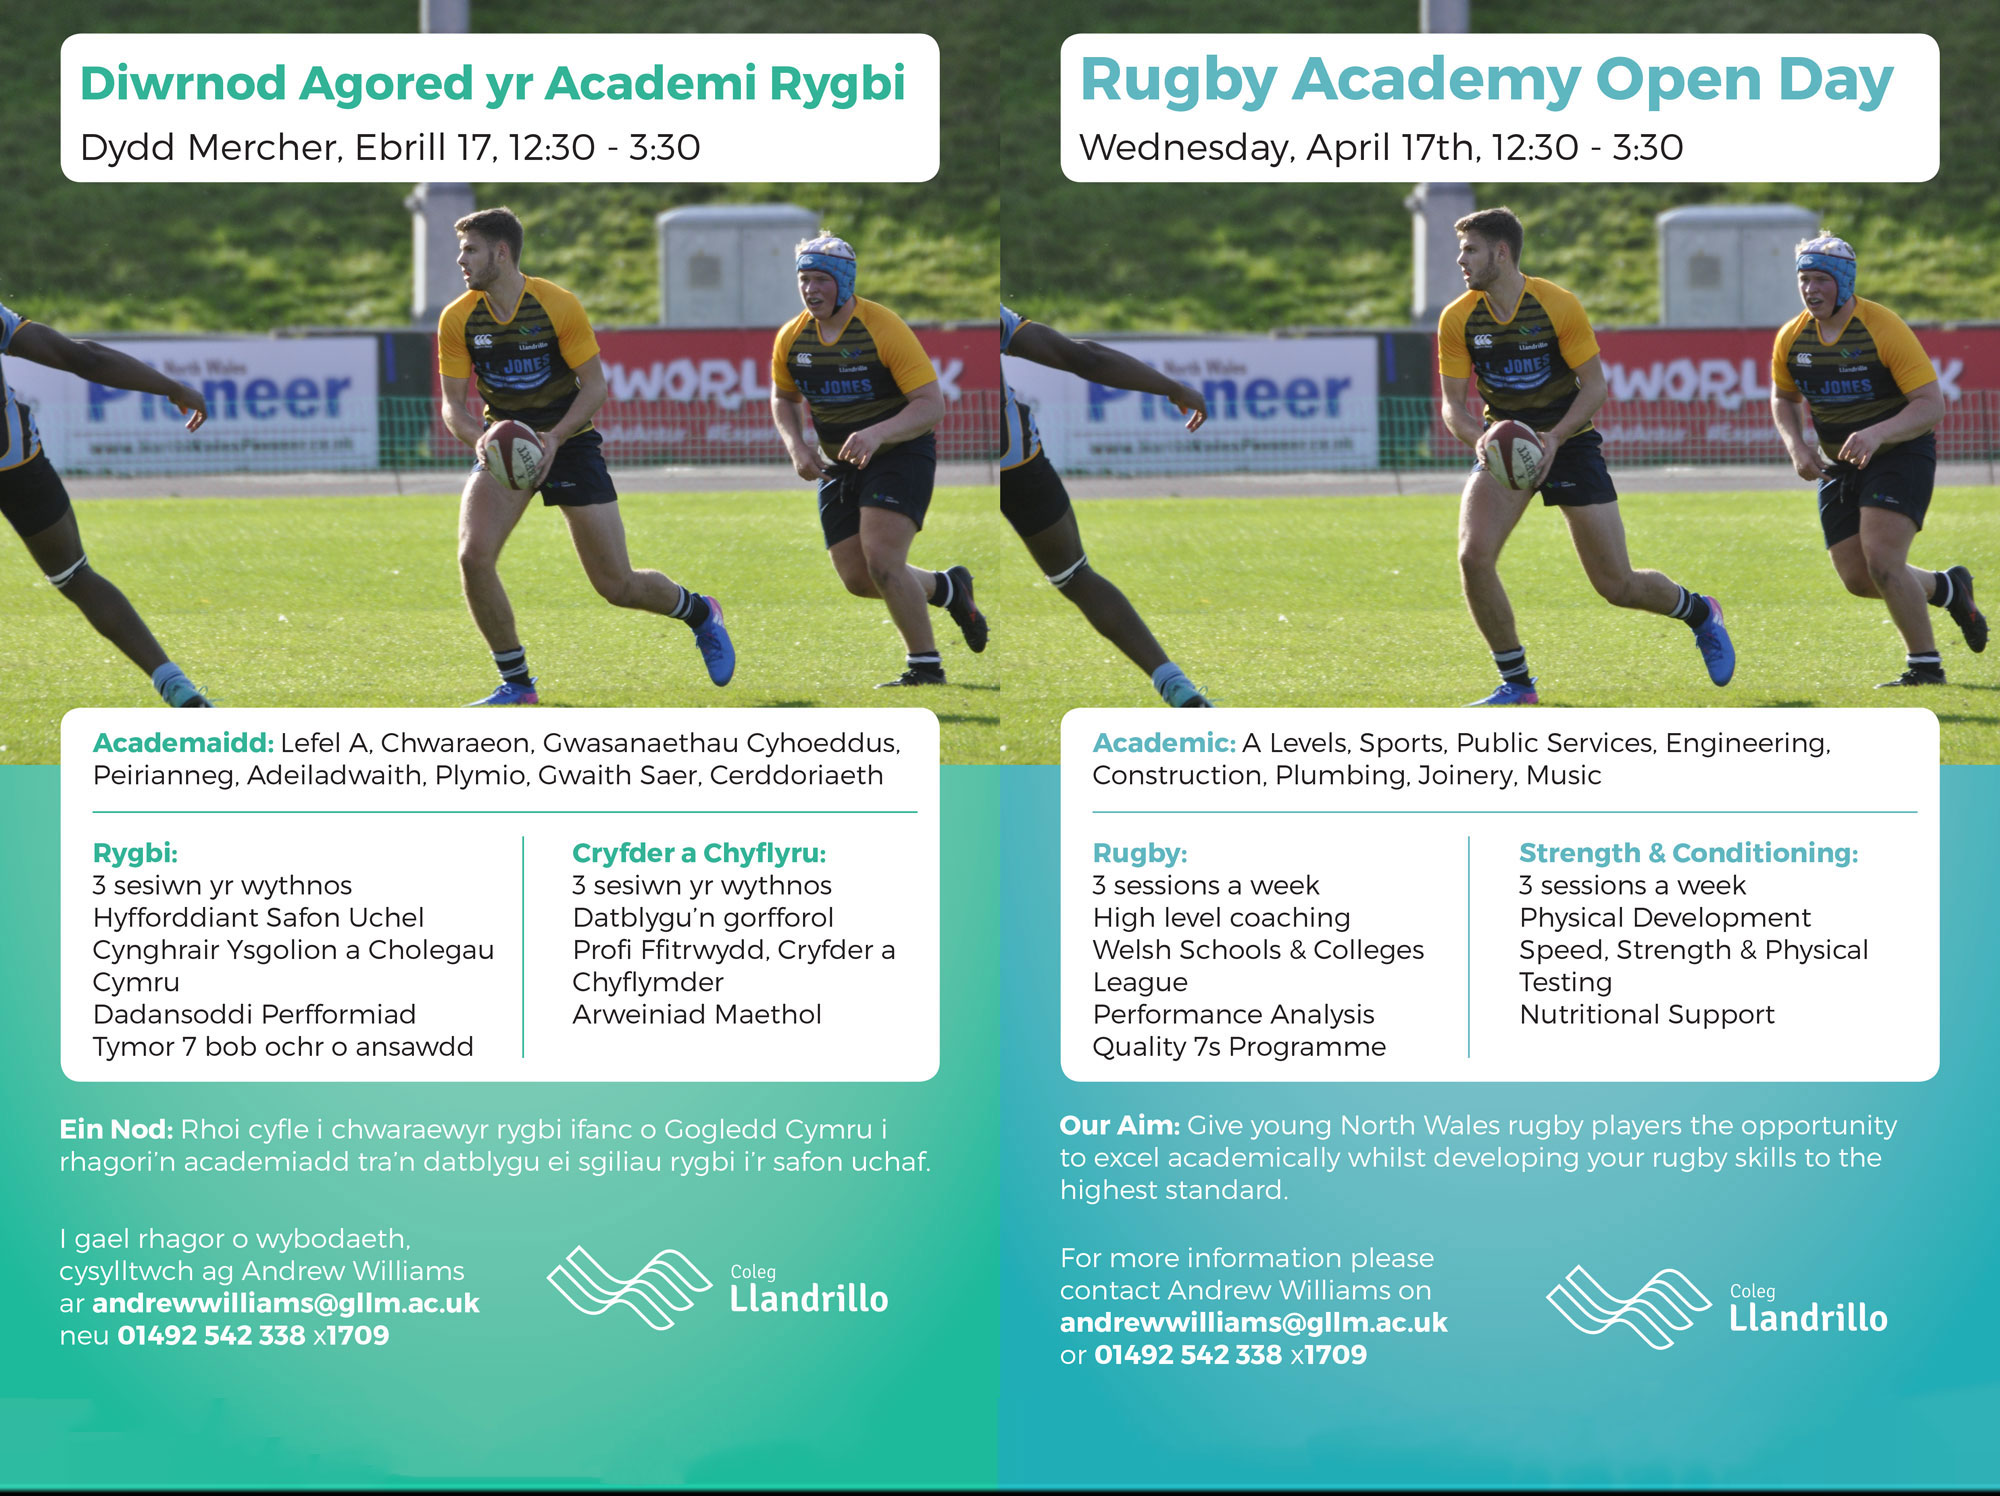 Rugby Academy Open Day